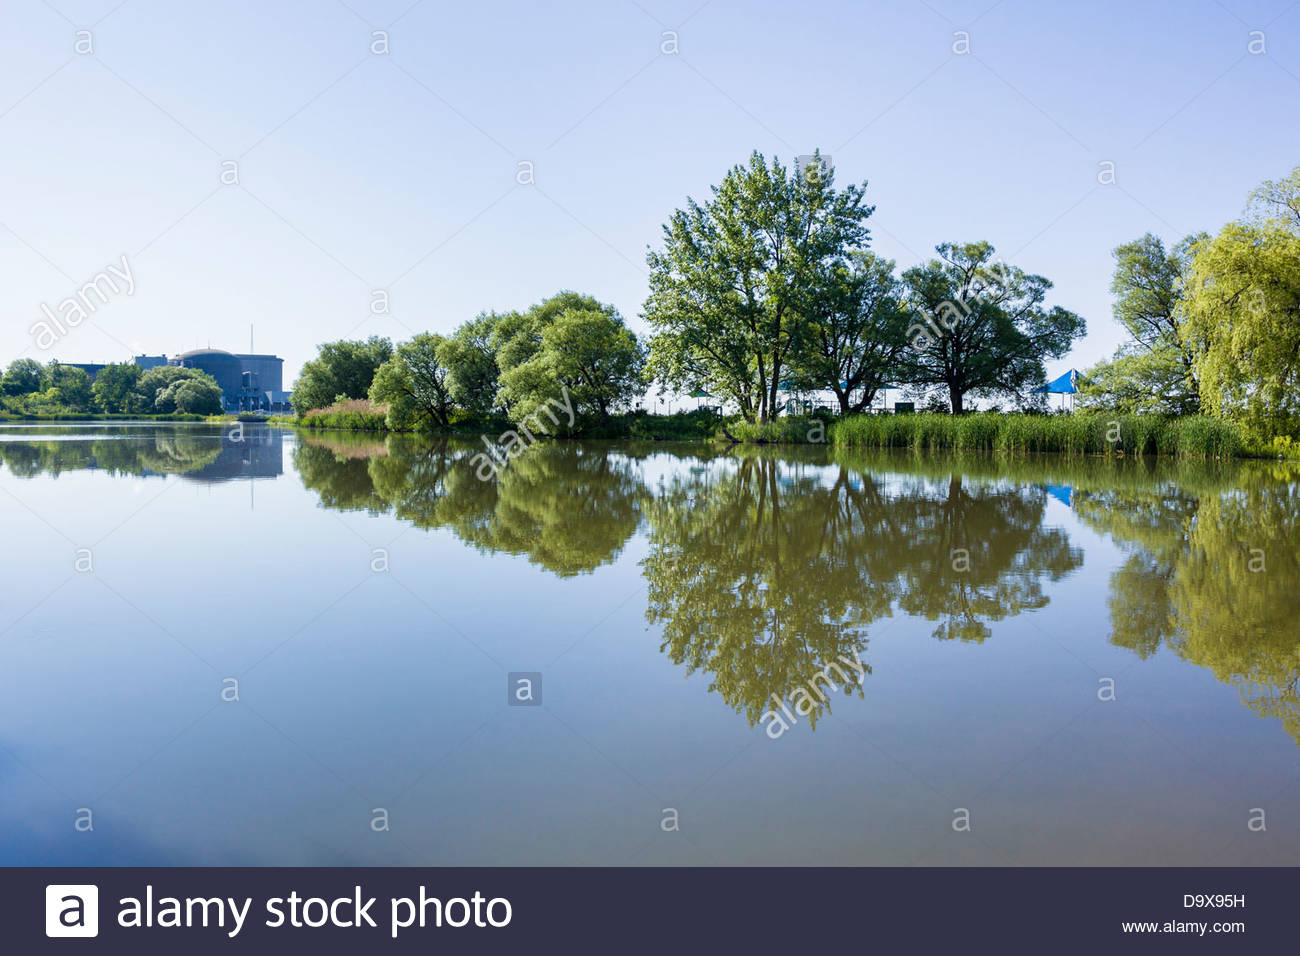 Lagoon behind CANDU nuclear reactor electric generating station in Pickering Ontario Canada - Stock Image